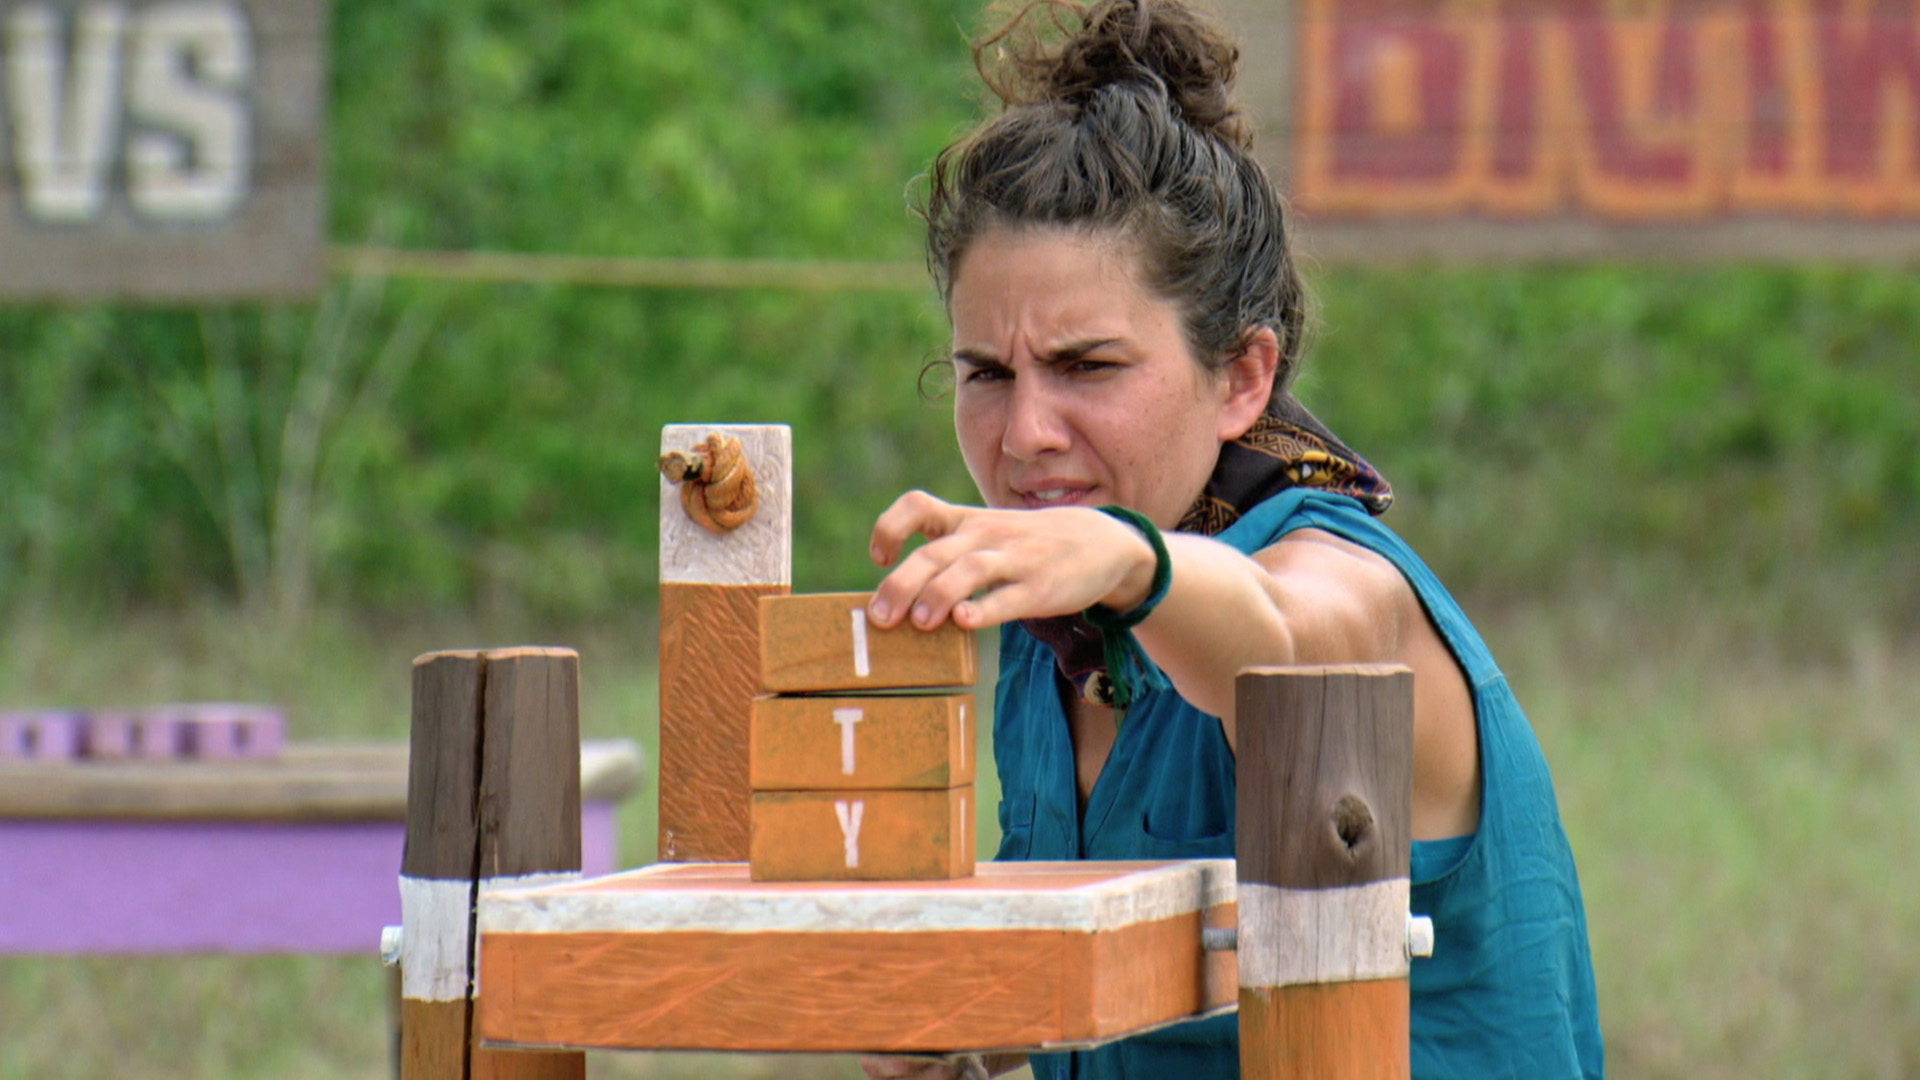 Aubry works to spell out the right word during the Individual Immunity Challenge.